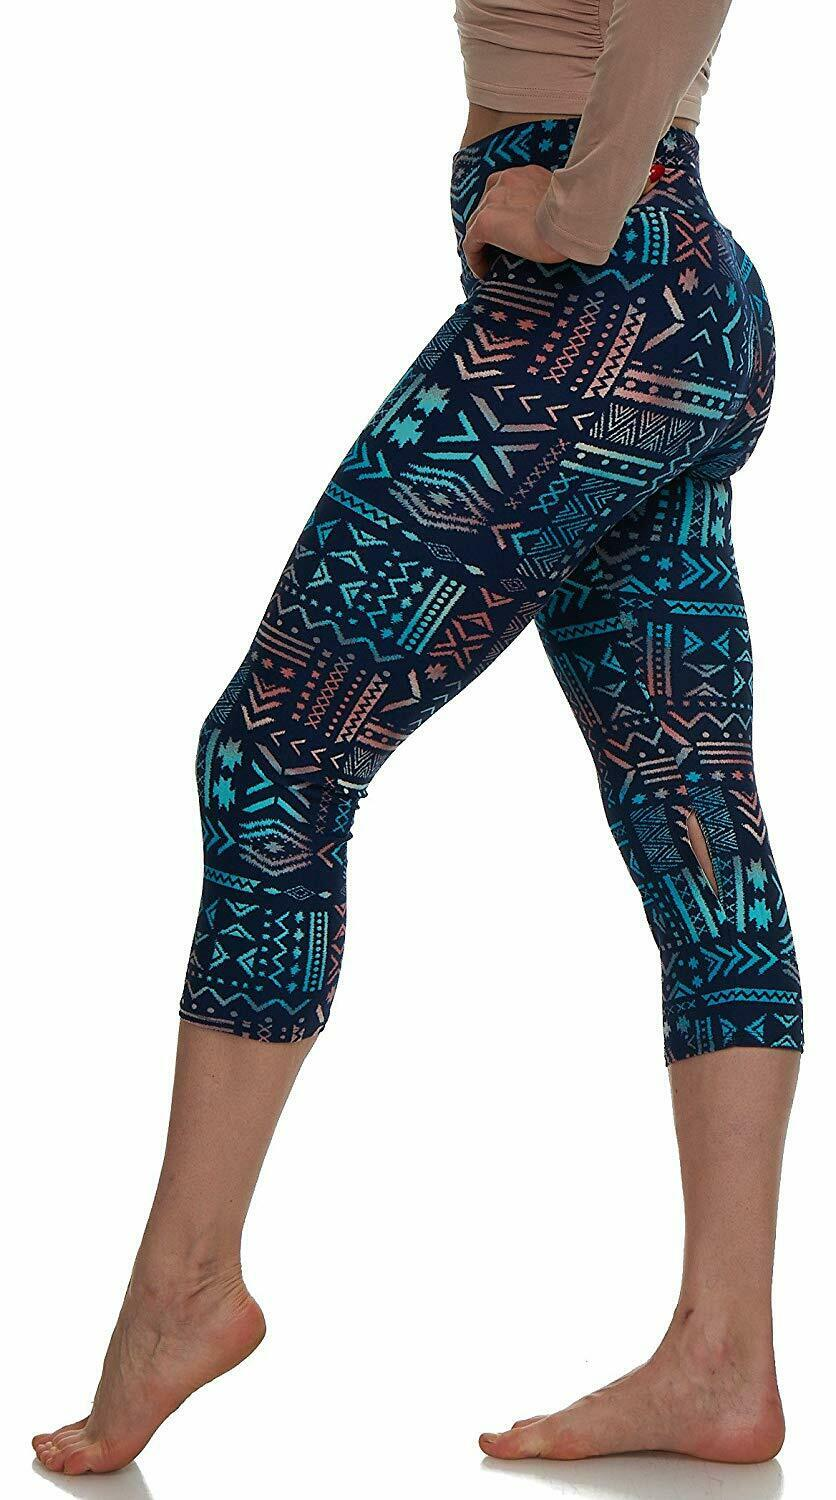 Extra Buttery Soft Capri Leggings with Design   Variety of Prints   One Size Clothing, Shoes & Accessories